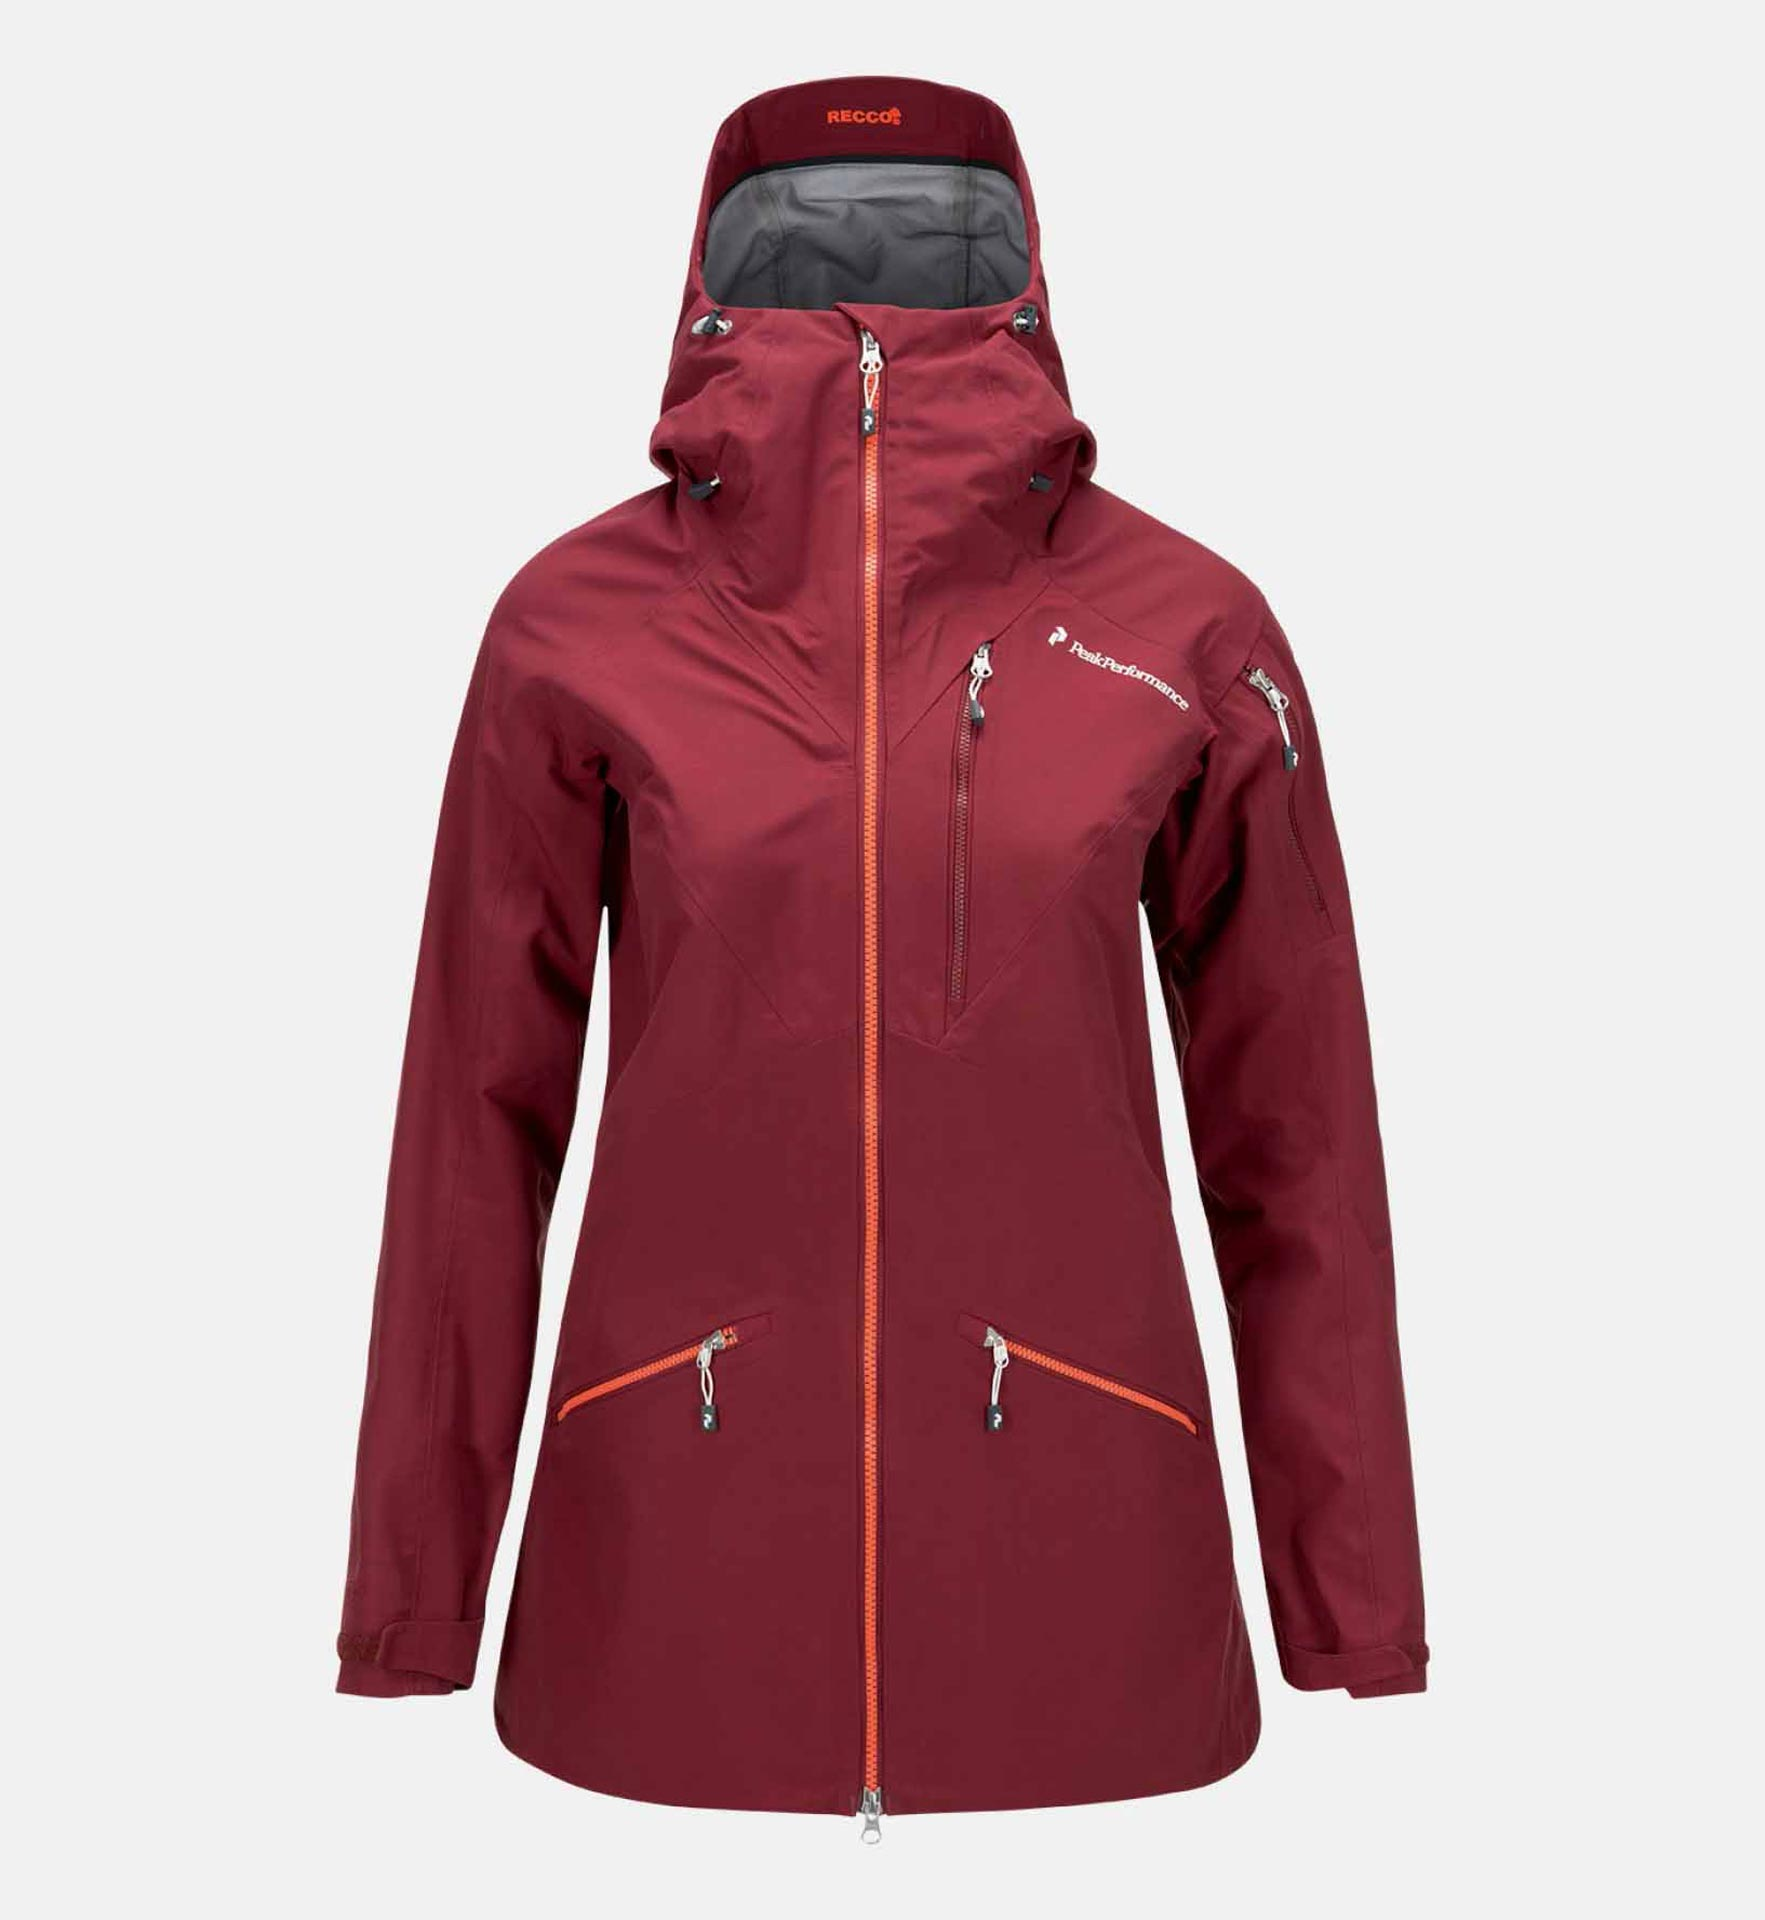 Peak Performance: Radical Freeride World Tour Jacket